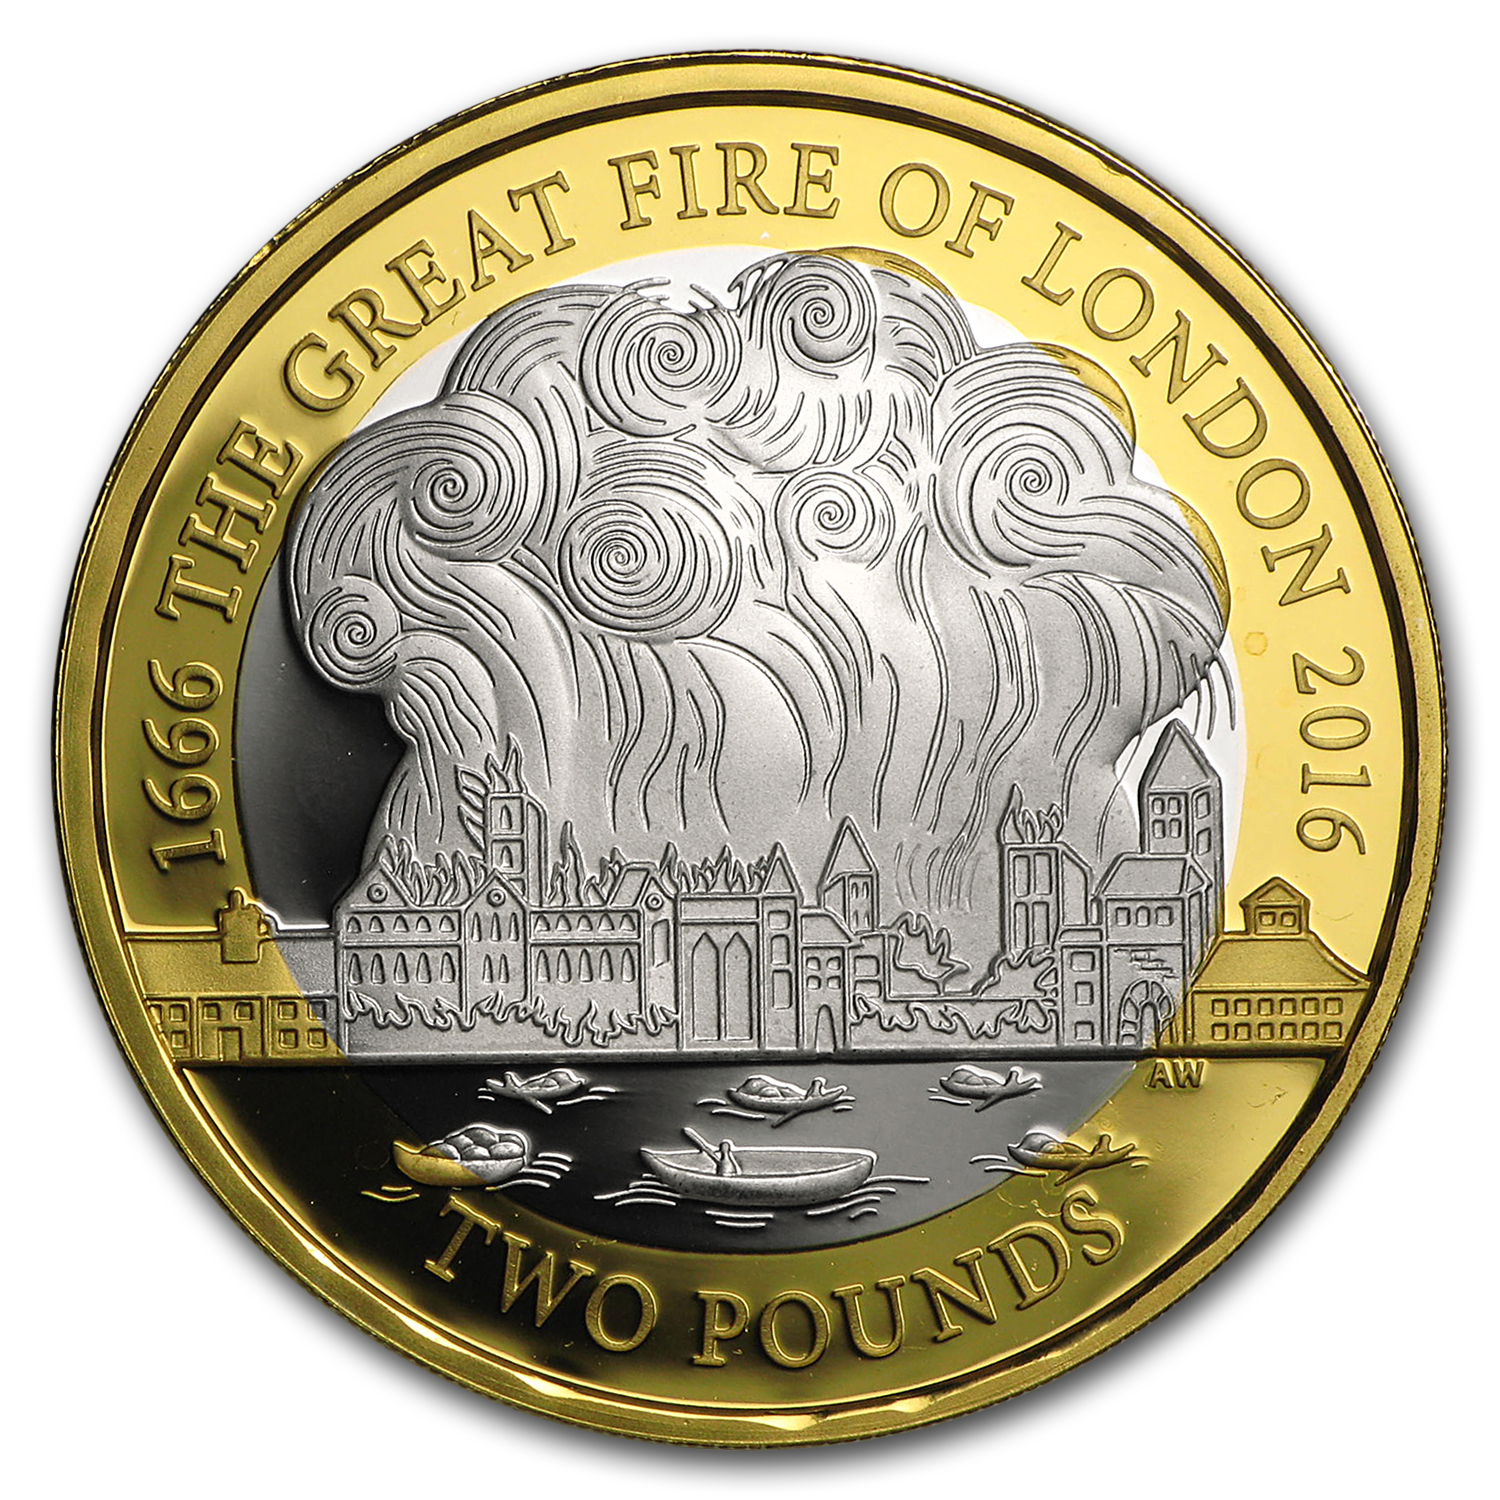 2016 Great Britain £2 Silver Great Fire of London Proof